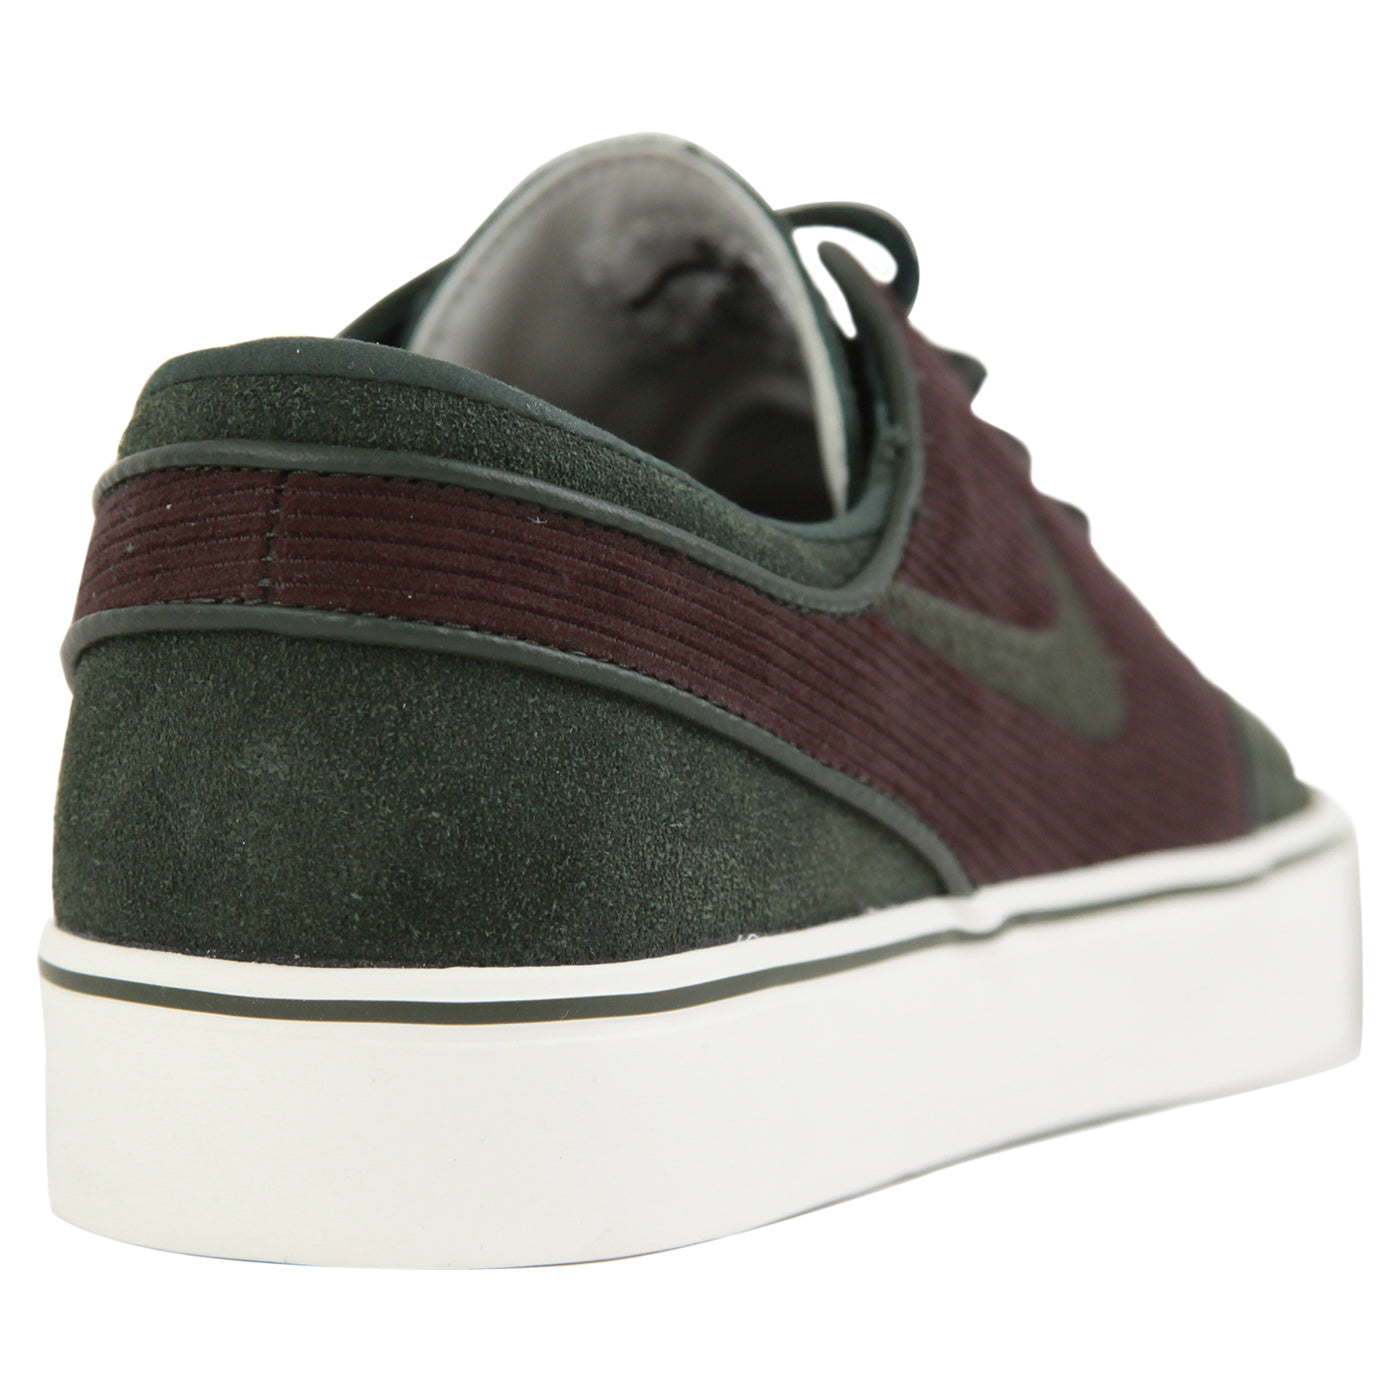 huge discount be917 bcb1d Stefan Janoski OG Shoes in Dark Army   Dark Army-Sail by Nike SB ...